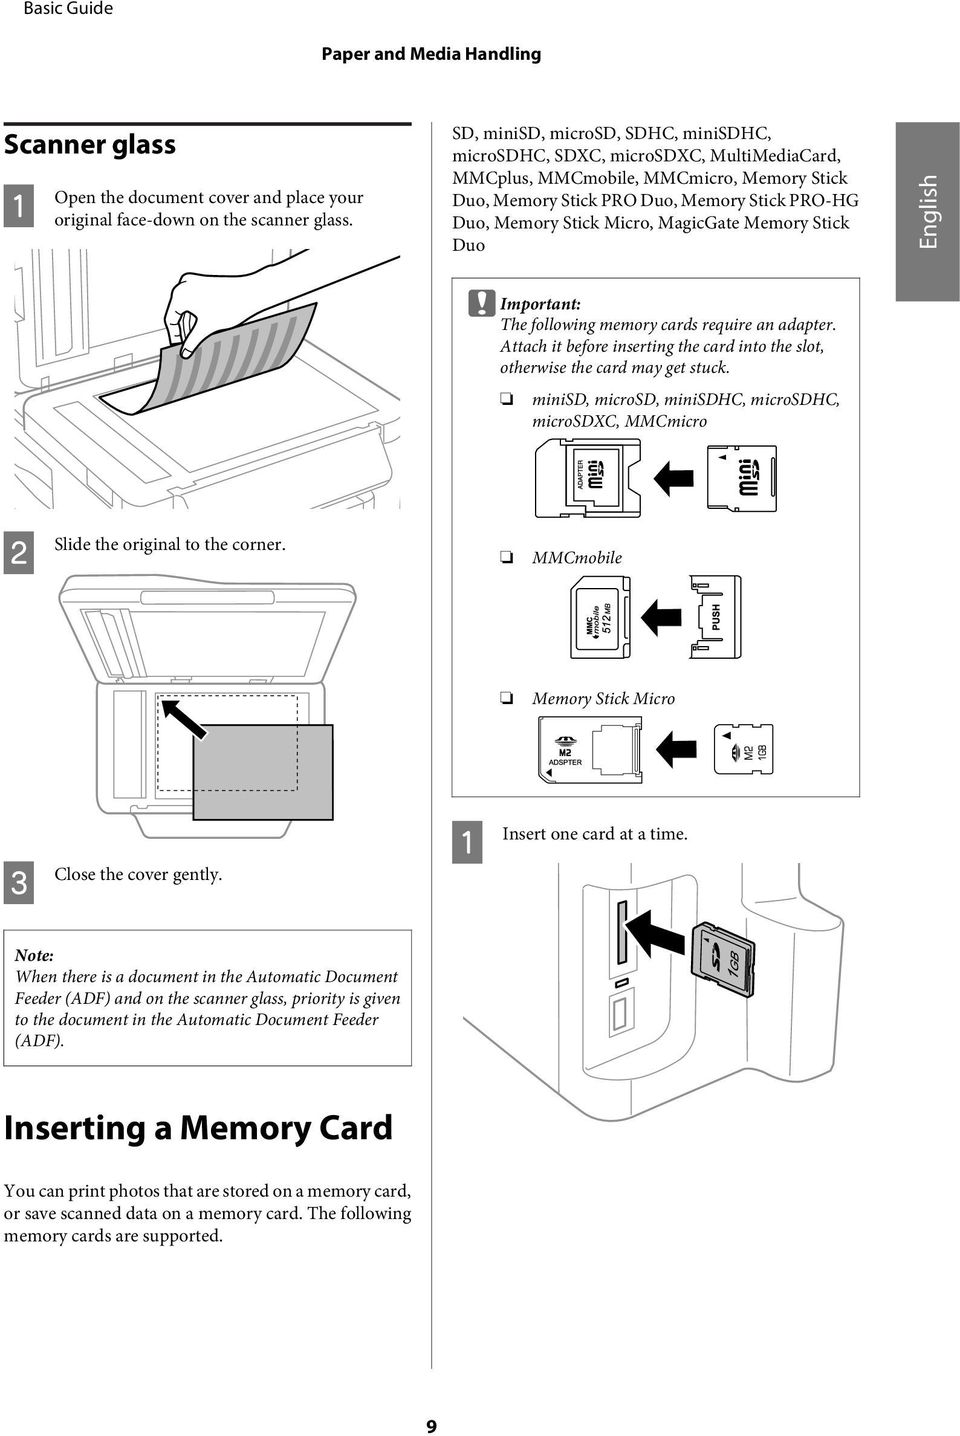 uo English c Important: The following memory cards require an adapter. ttach it before inserting the card into the slot, otherwise the card may get stuck.